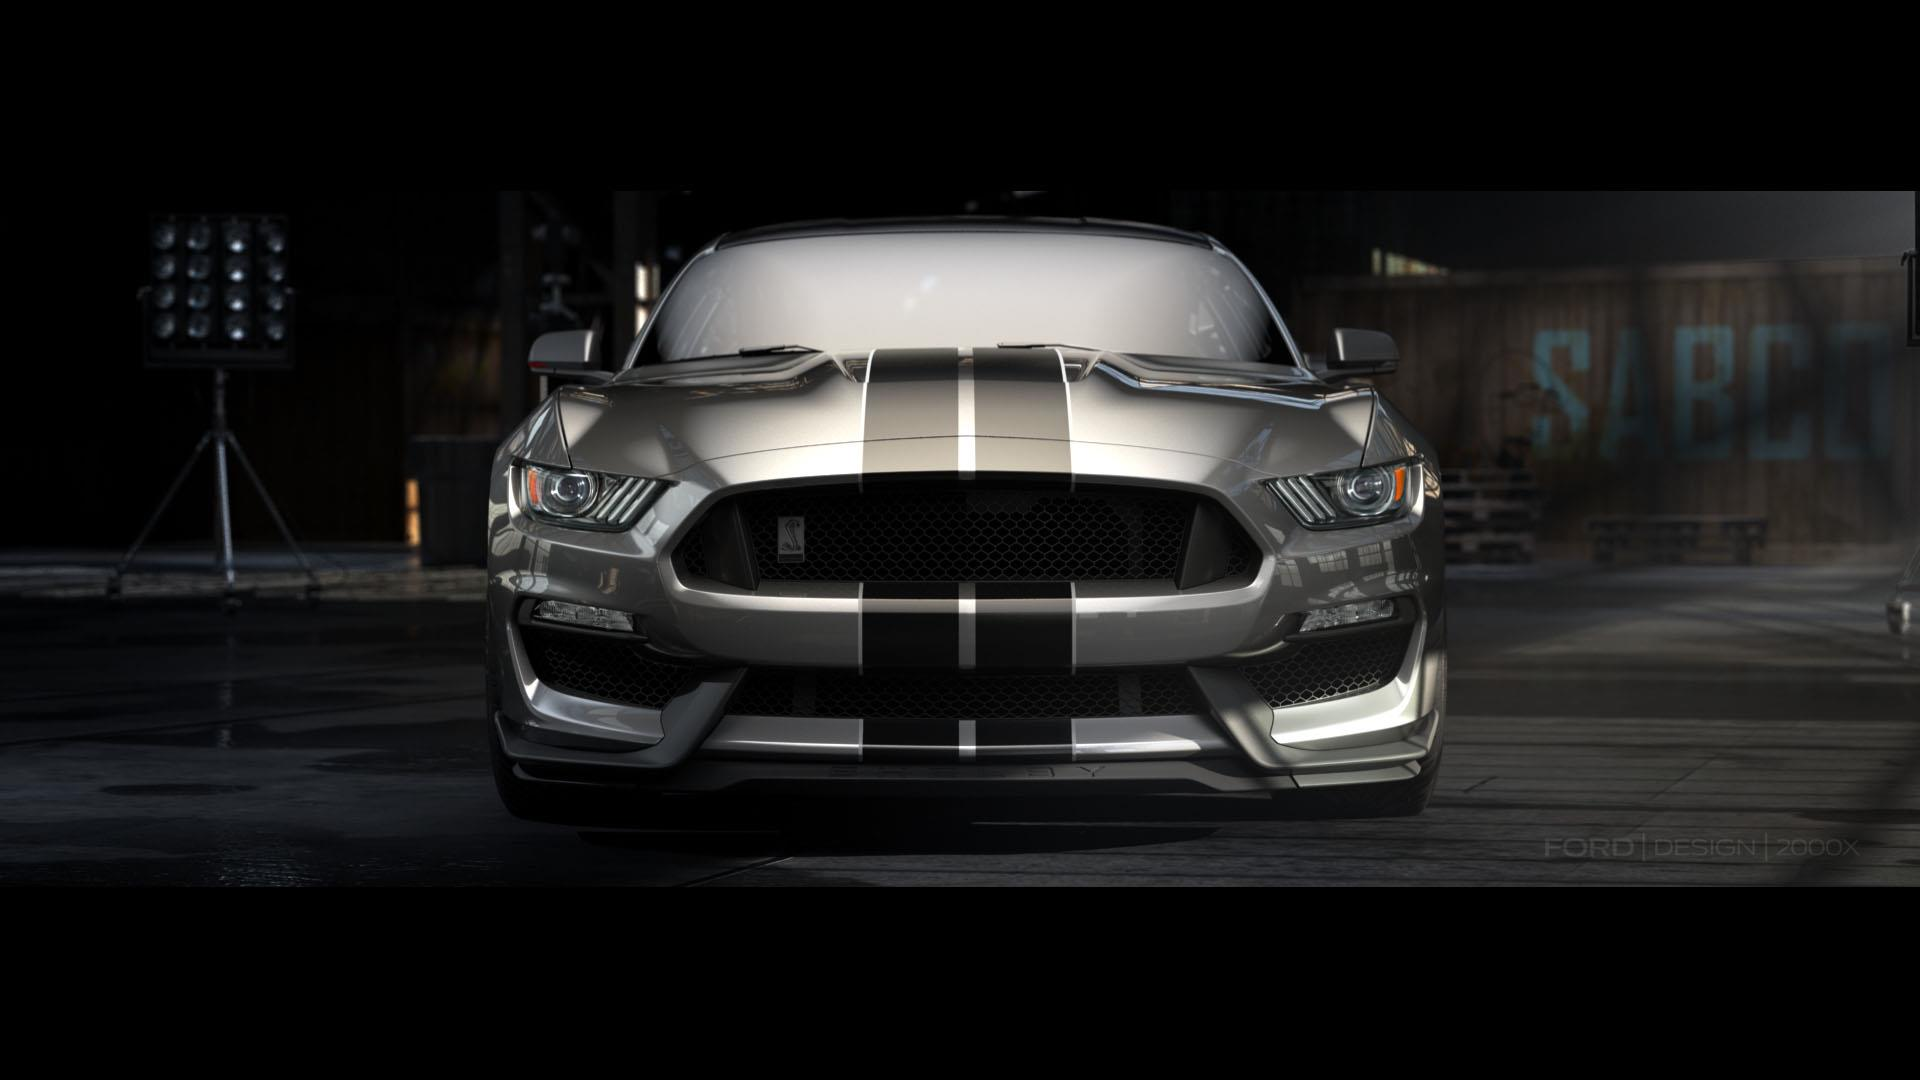 D And D Auto Sales >> 2016 Ford Mustang Shelby GT350 News and Information